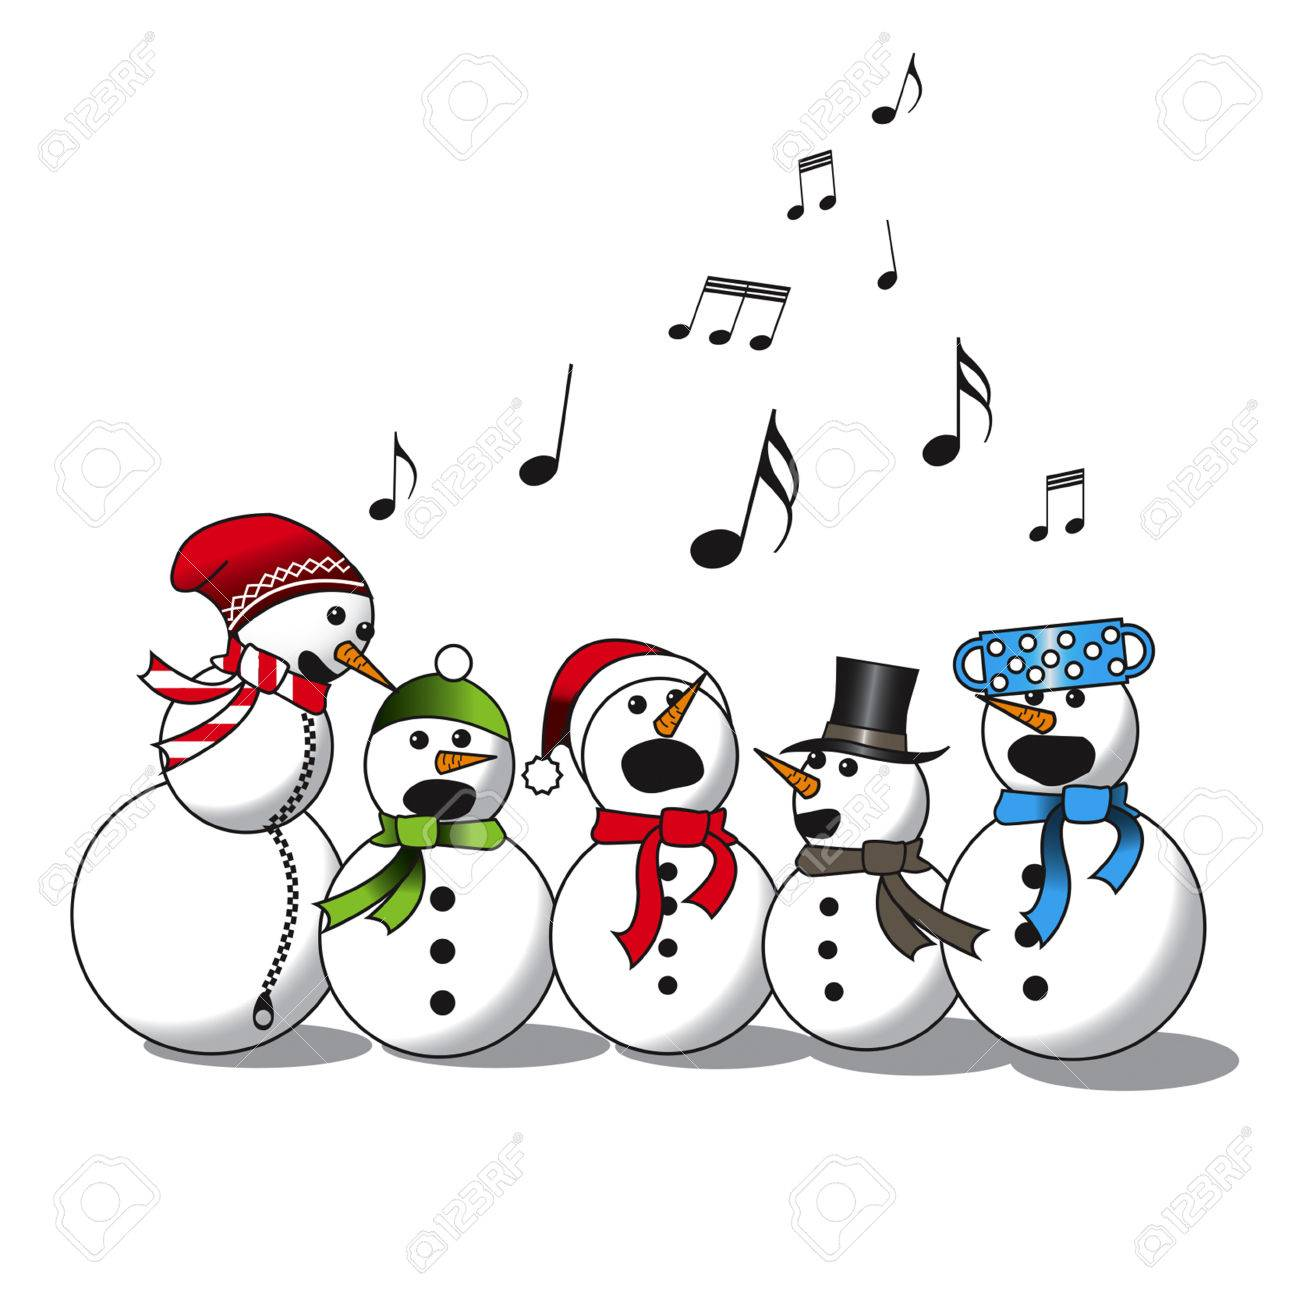 Snowman Singing -choir, Christmas Carol Isolated On White Background  Royalty Free Cliparts, Vectors, And Stock Illustration. Image 64678884.